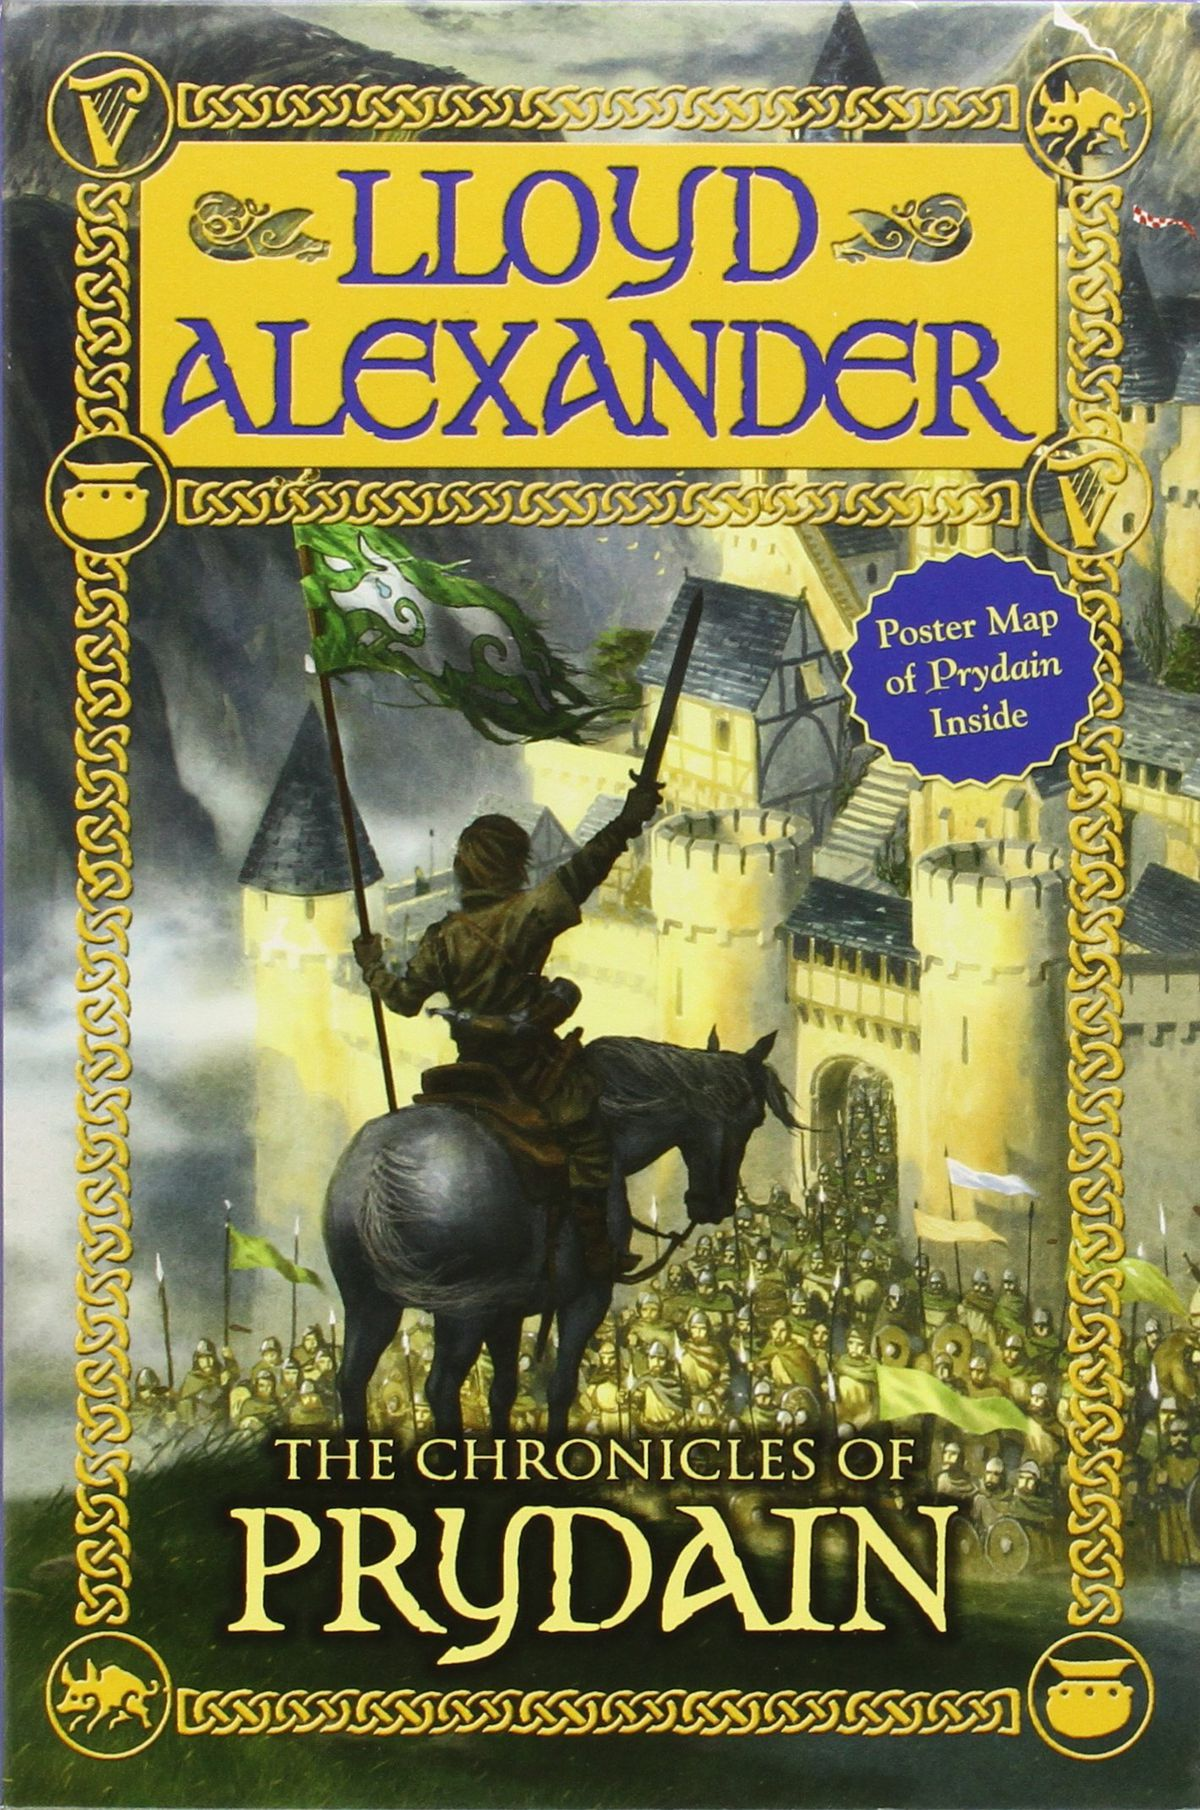 The Chronicles of Prydain is the greatest fantasy series ...